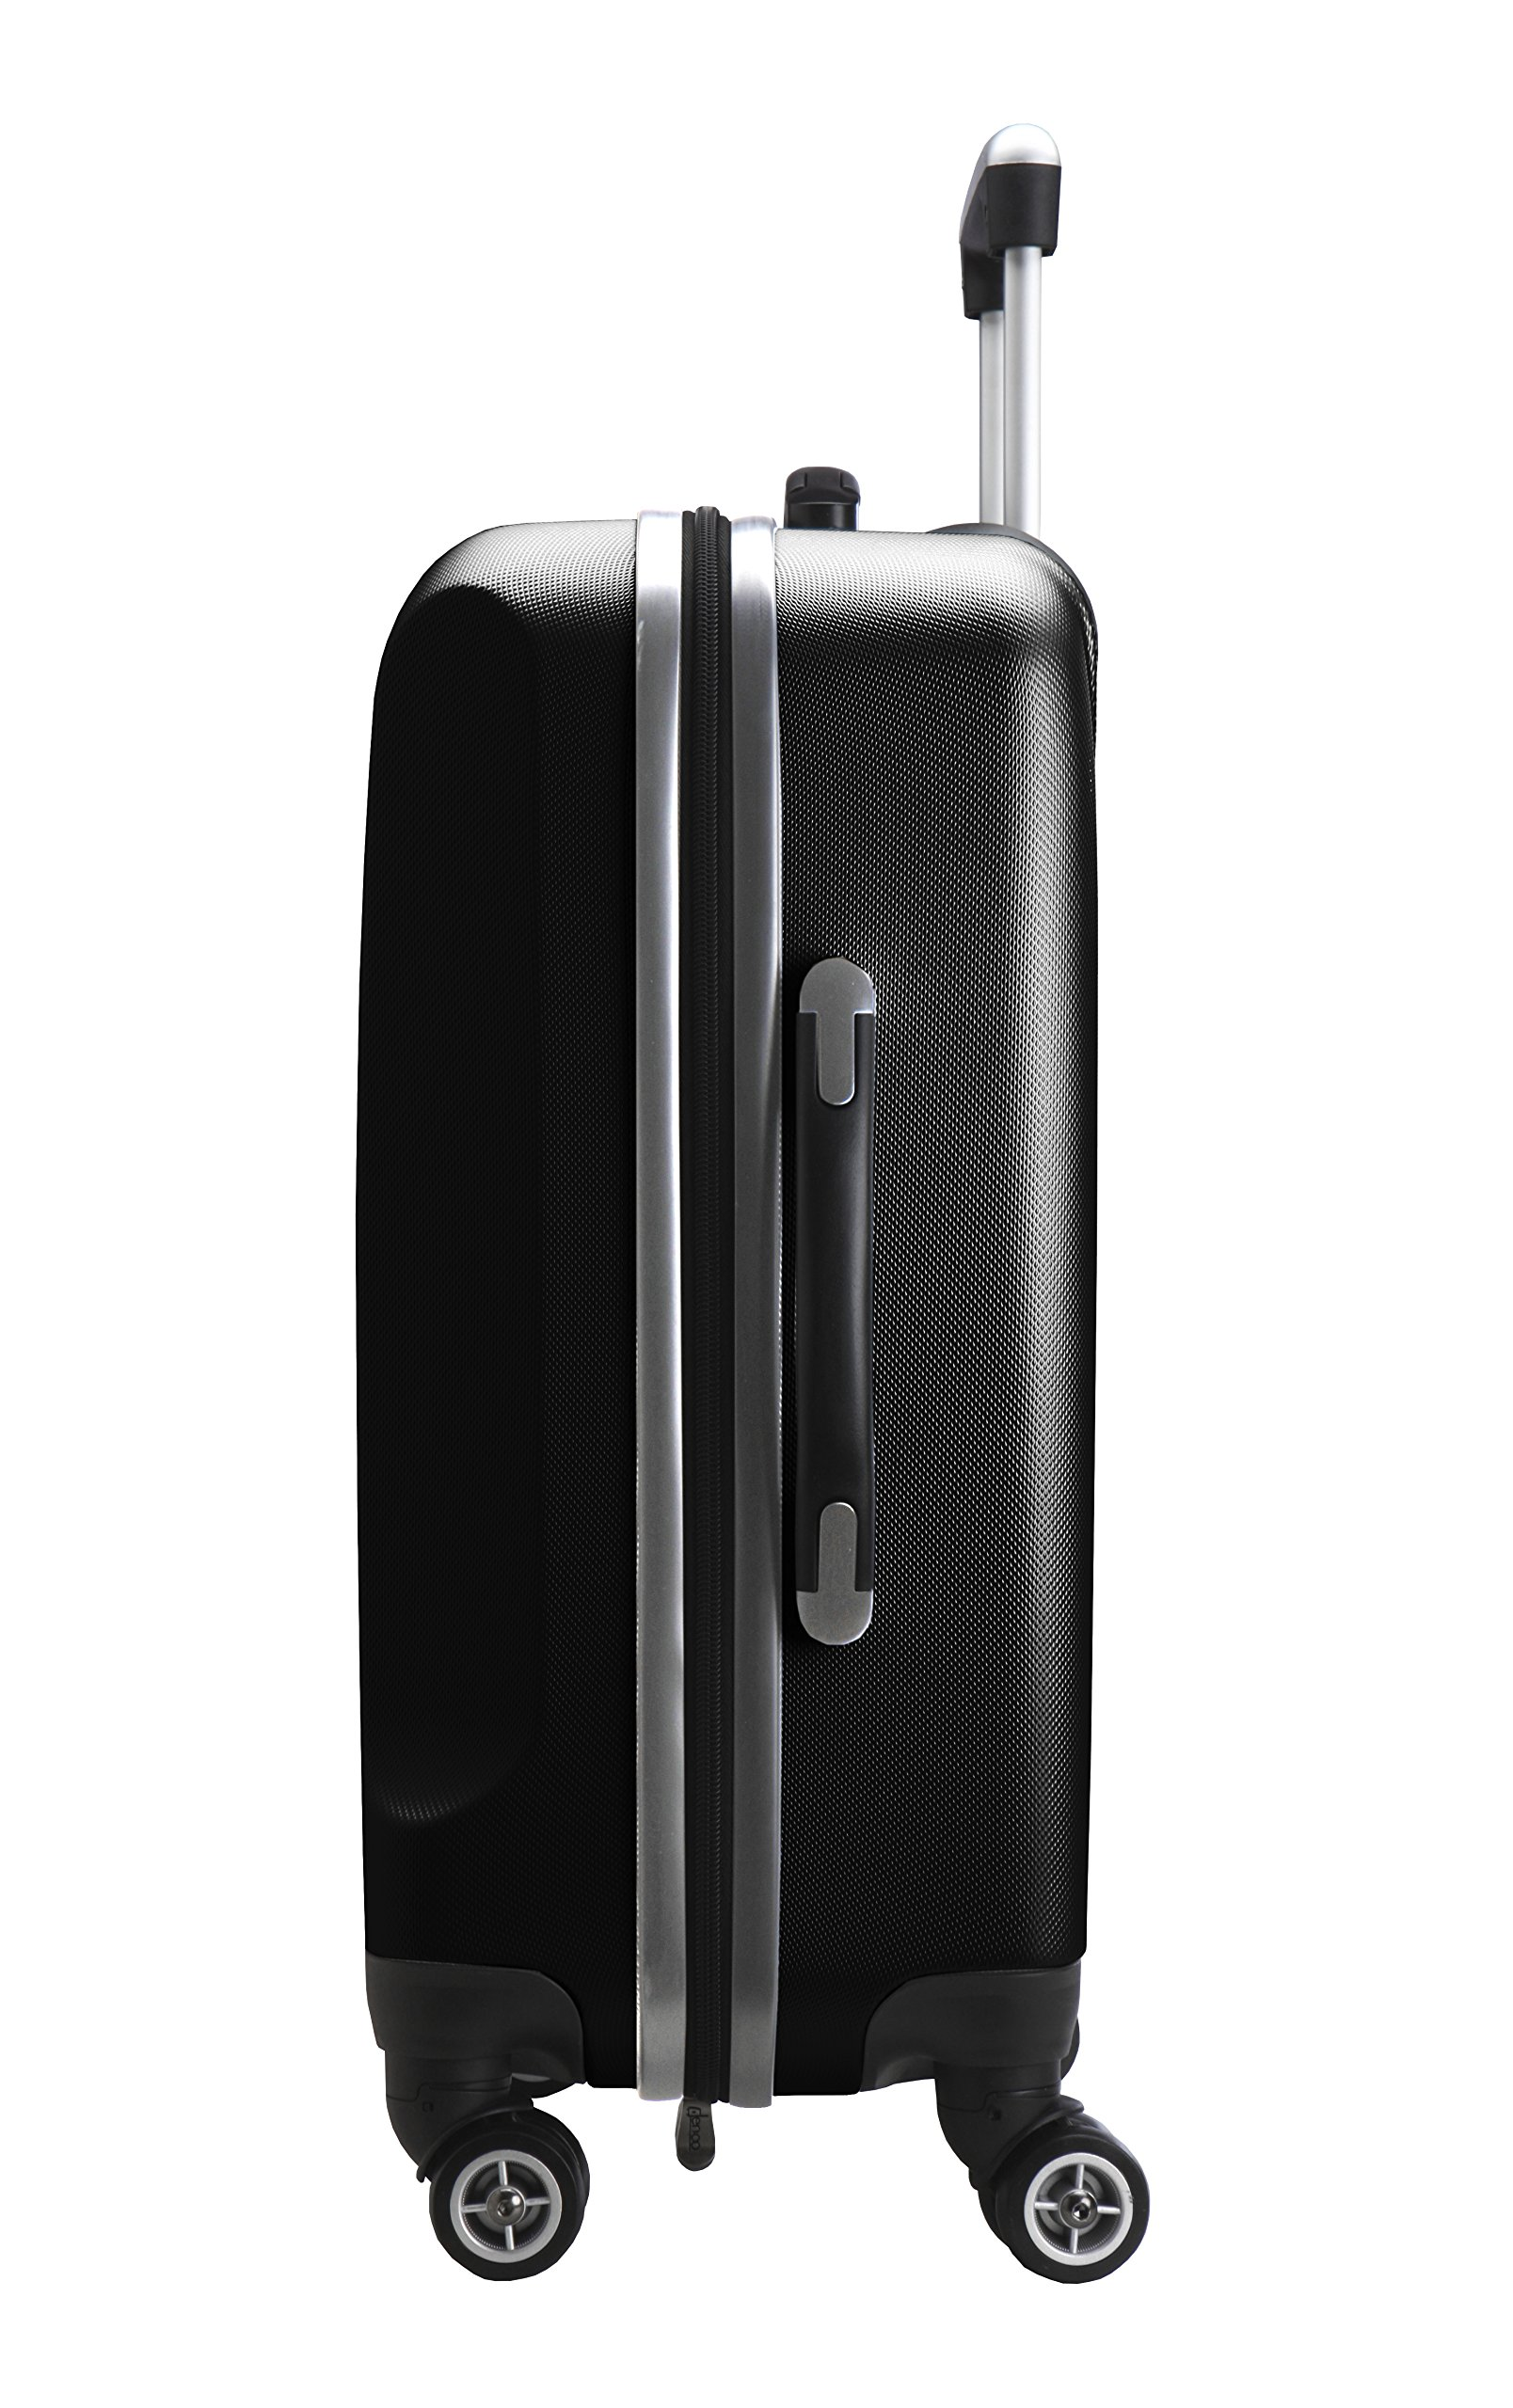 Denco NBA Houston Rockets Carry-On Hardcase Luggage Spinner, Black by Denco (Image #4)